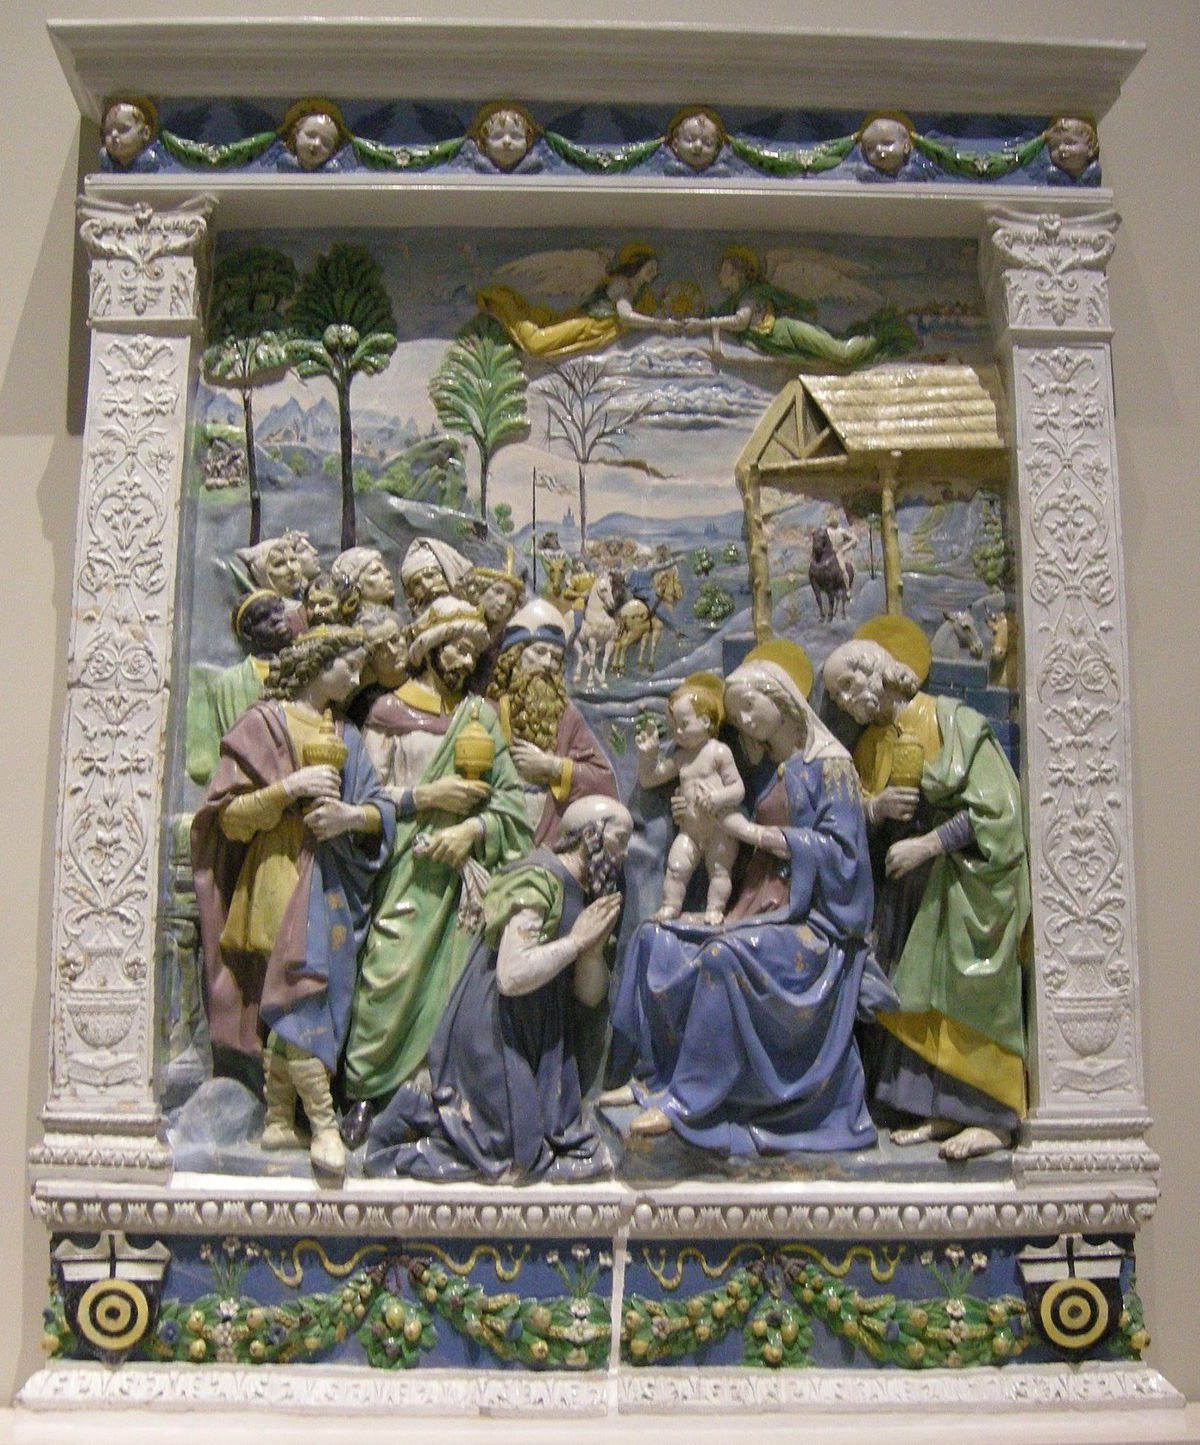 Adoration of the Magi (Andrea della Robbia) - Wikipedia